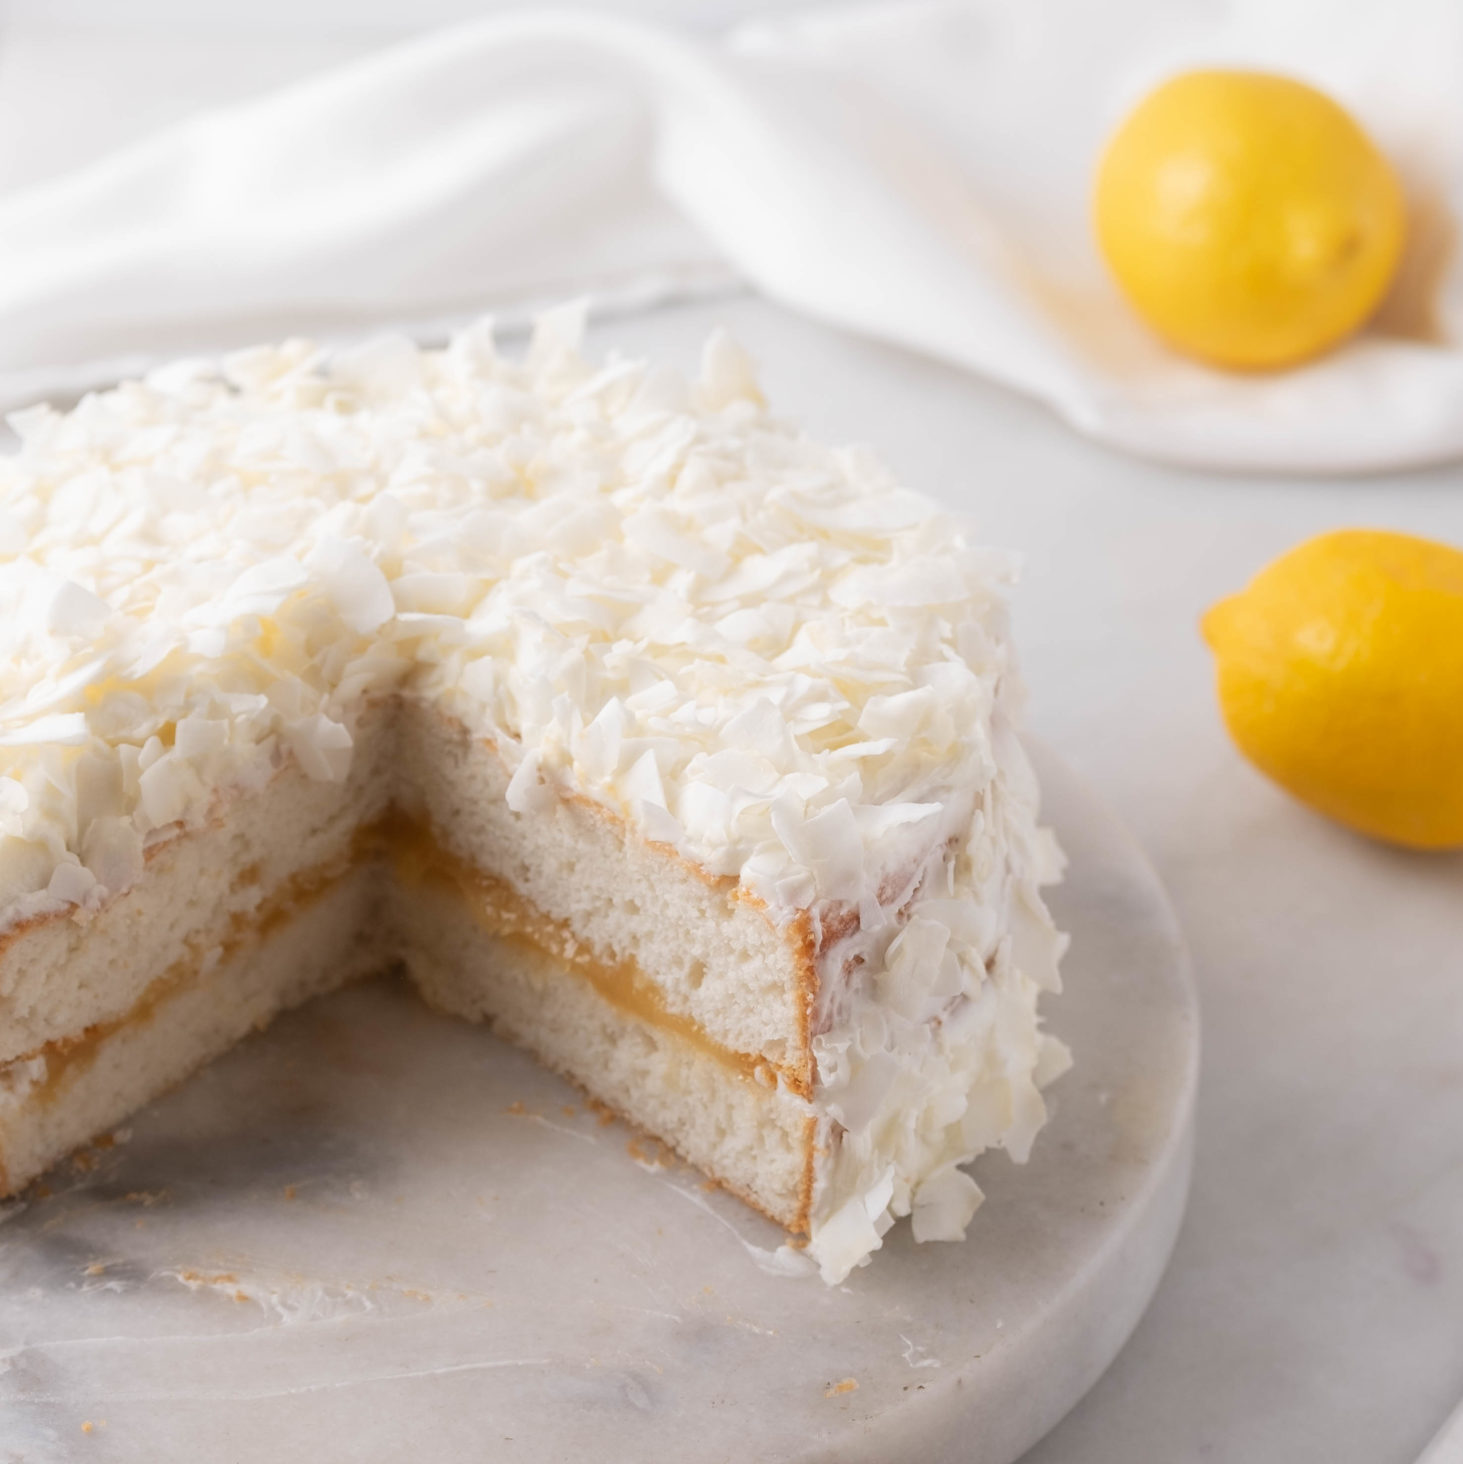 coconut cake out of a boxed cake mix sliced with lemons